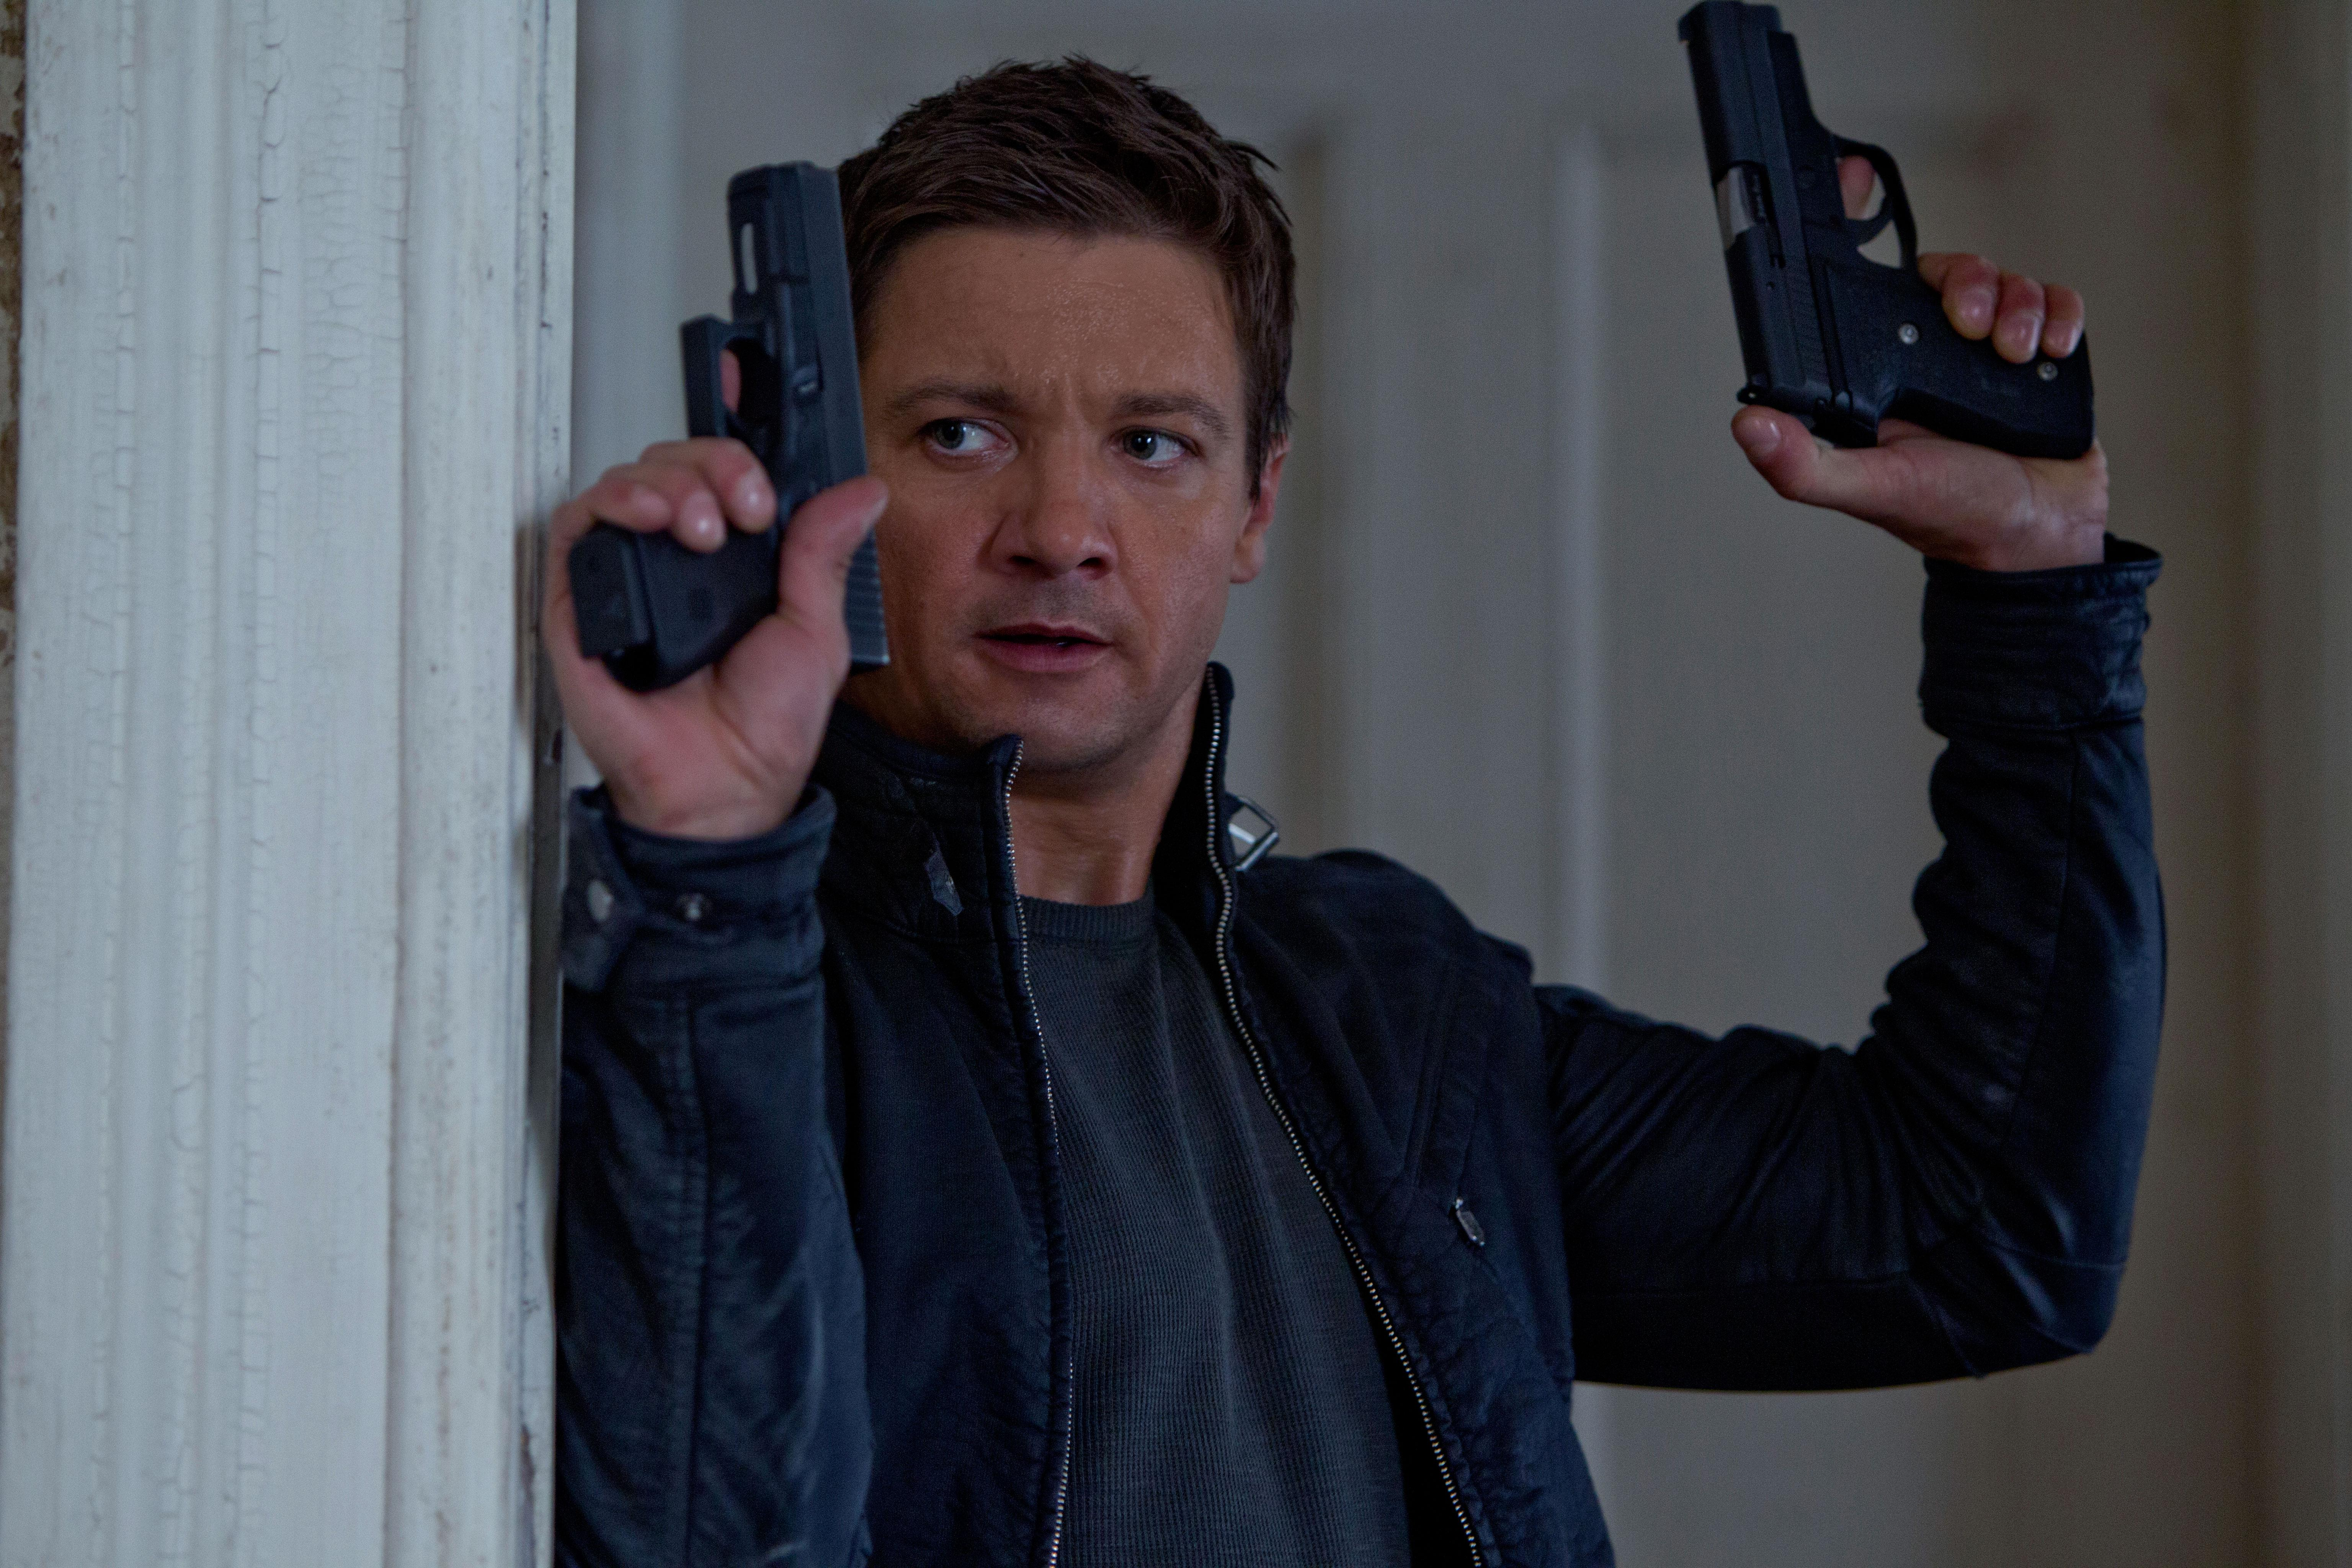 THE BOURNE LEGACY Clips and Image